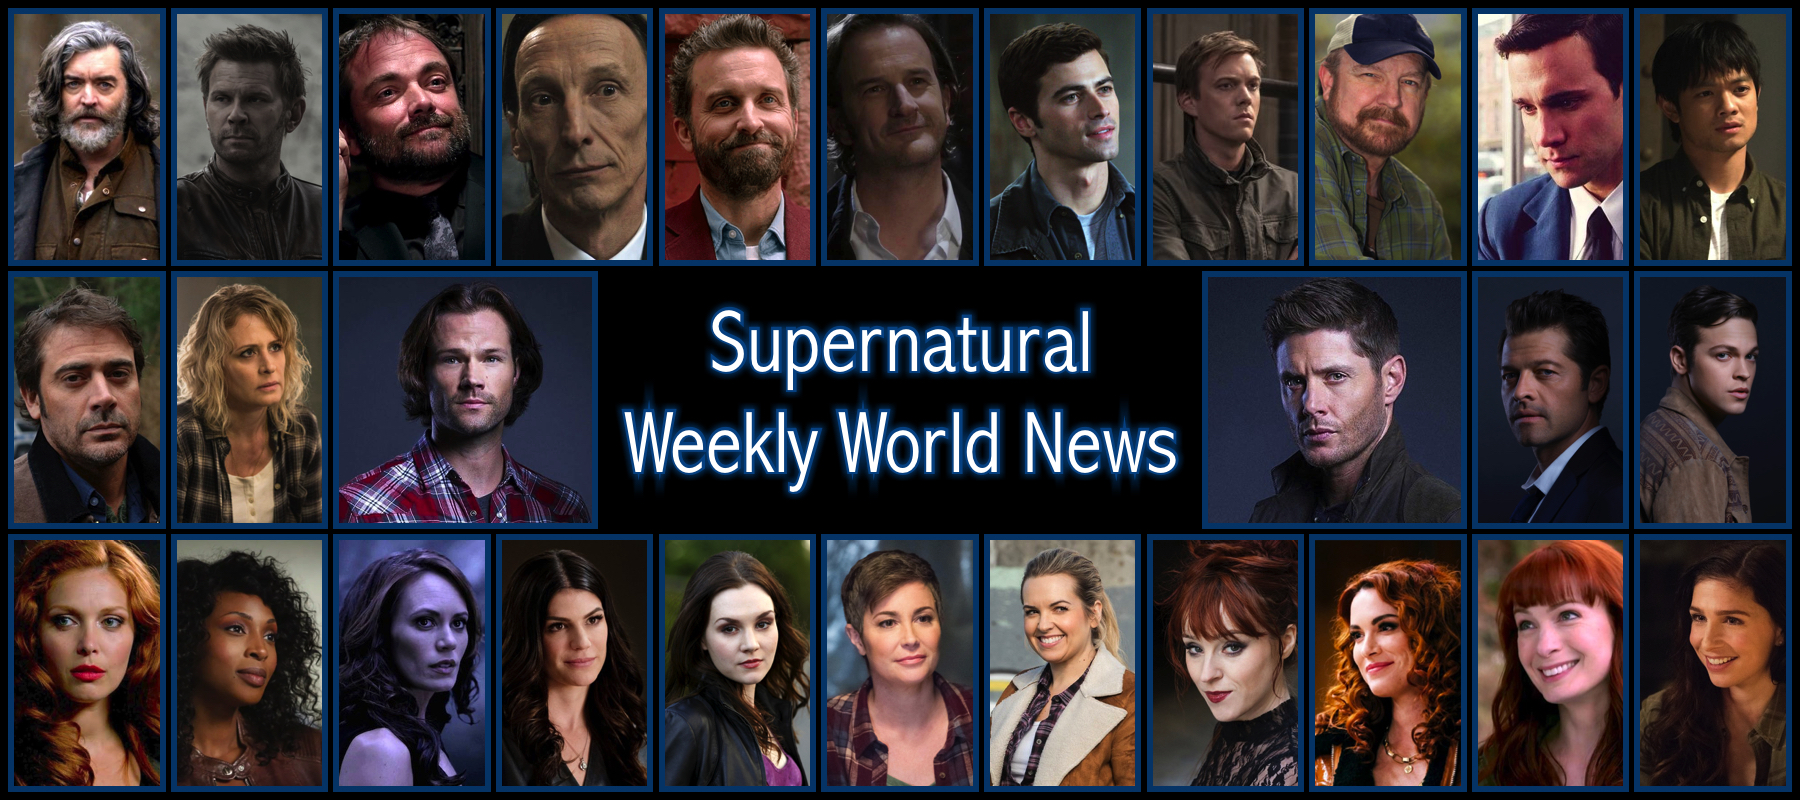 Supernatural Weekly World News